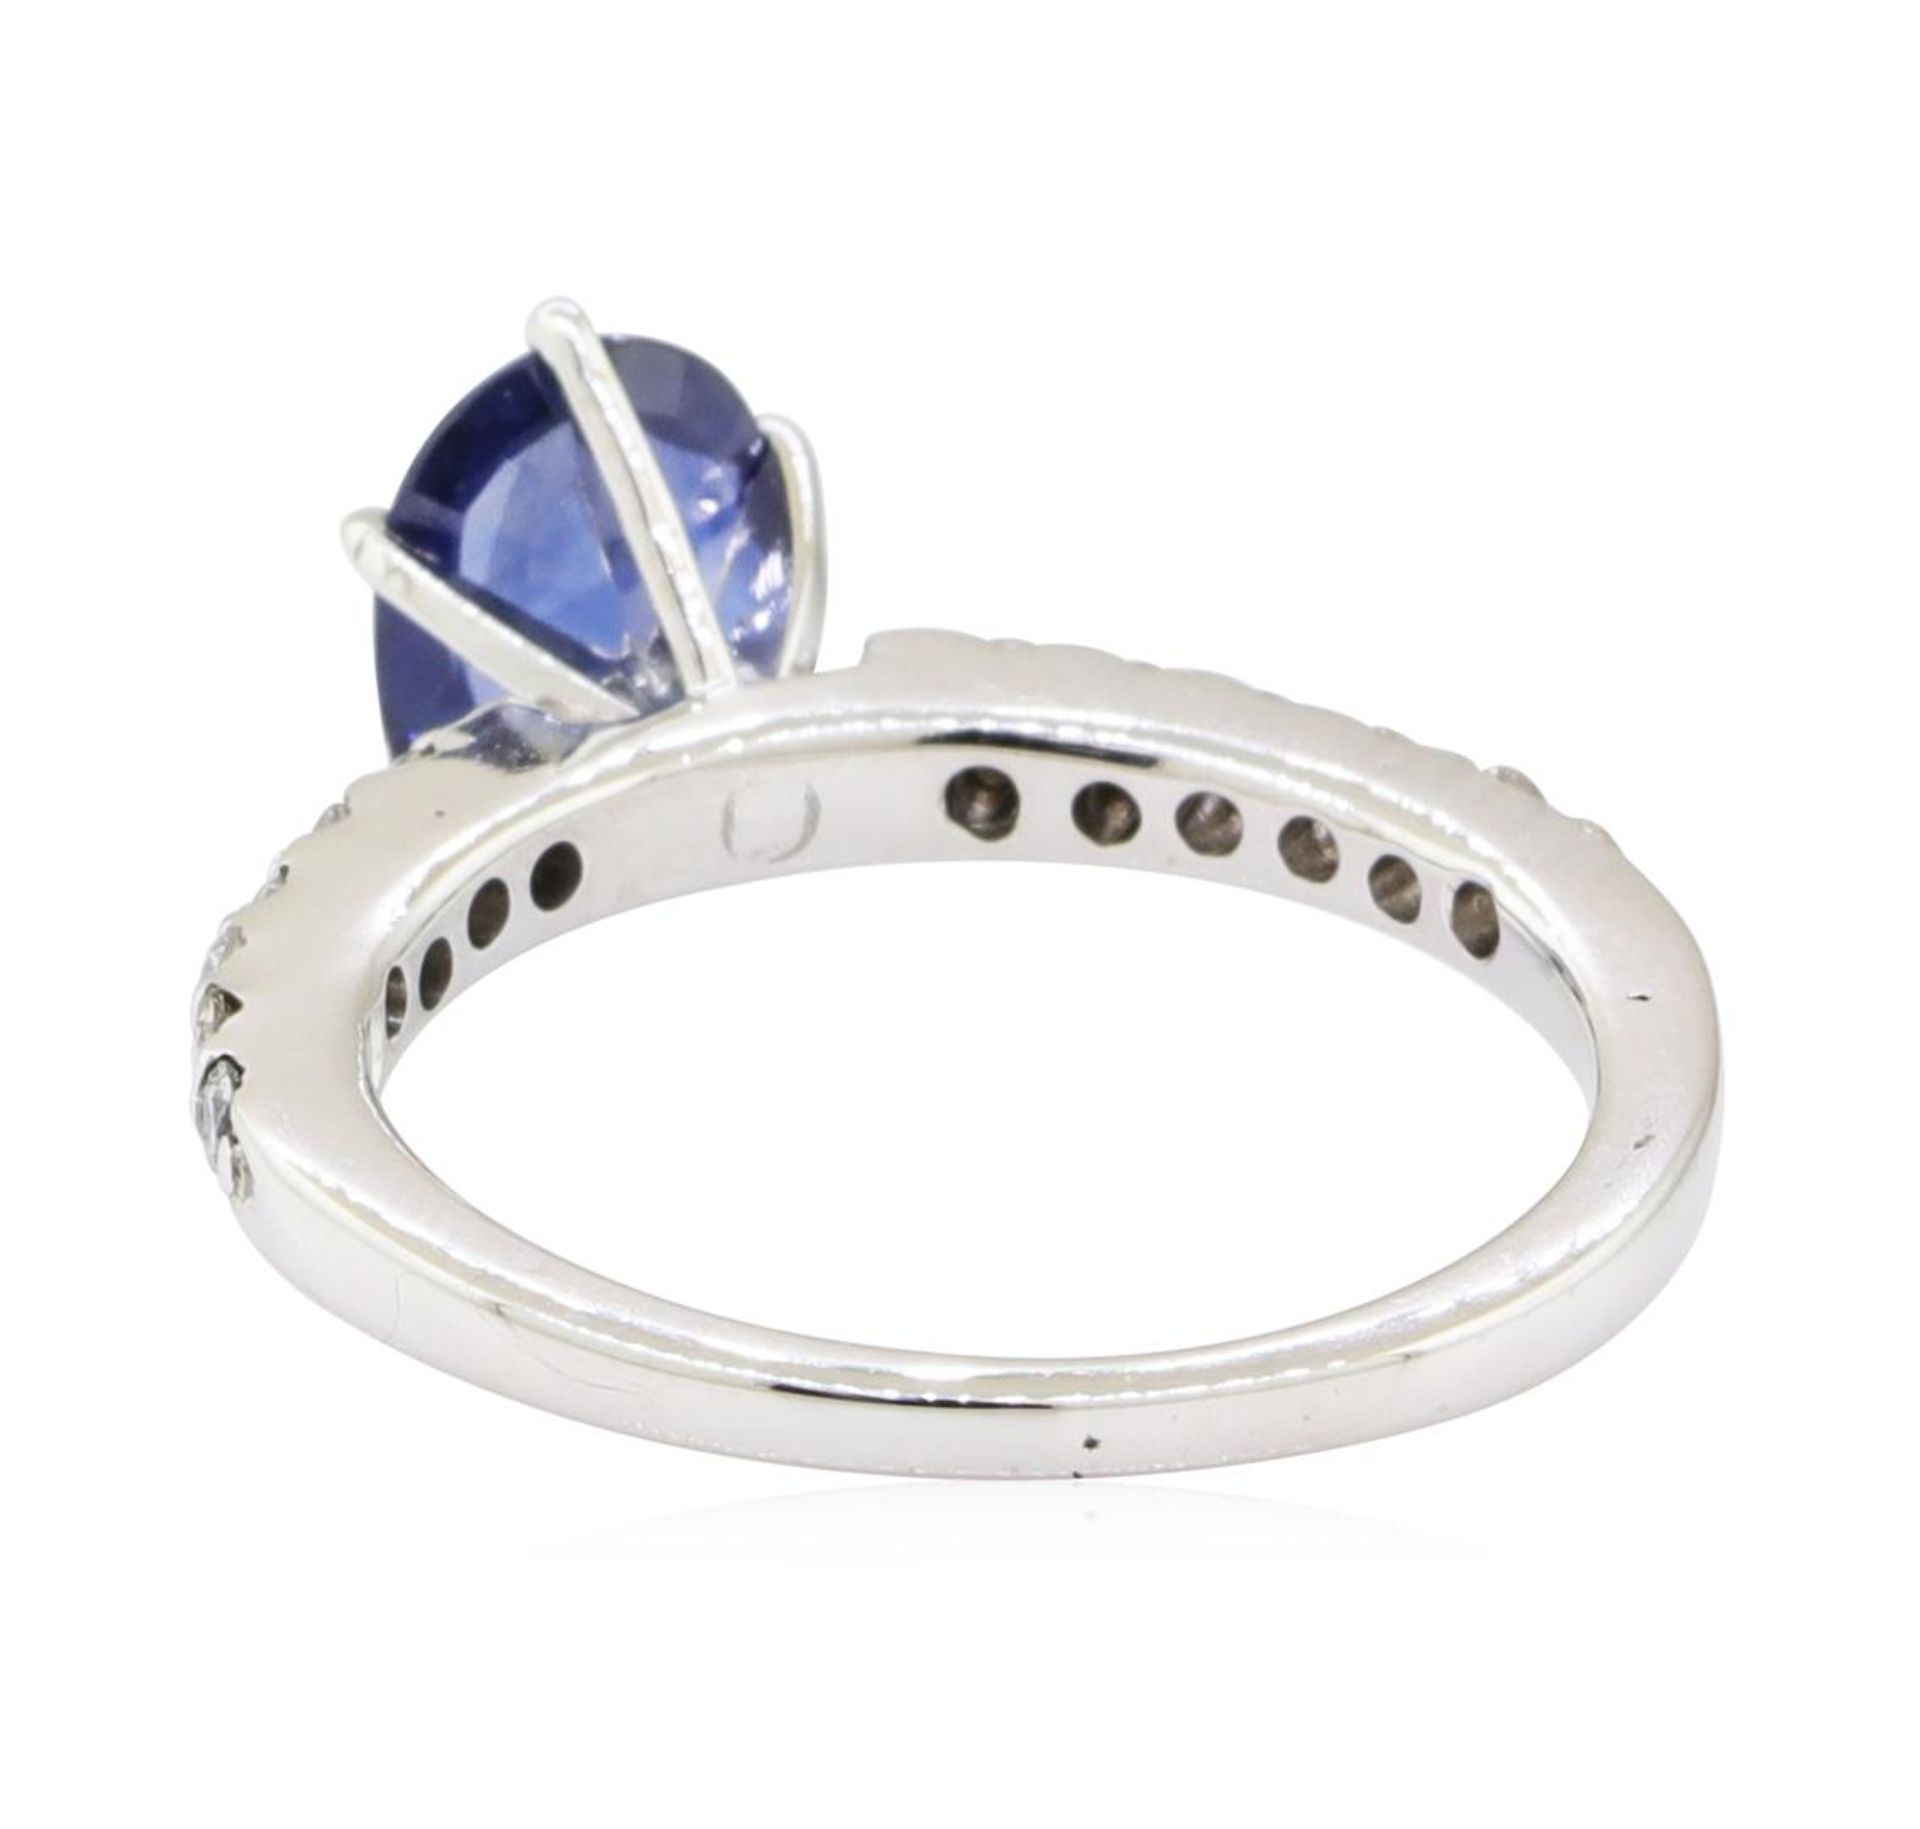 1.25ctw Sapphire and Diamond Ring - 14KT White Gold - Image 3 of 4